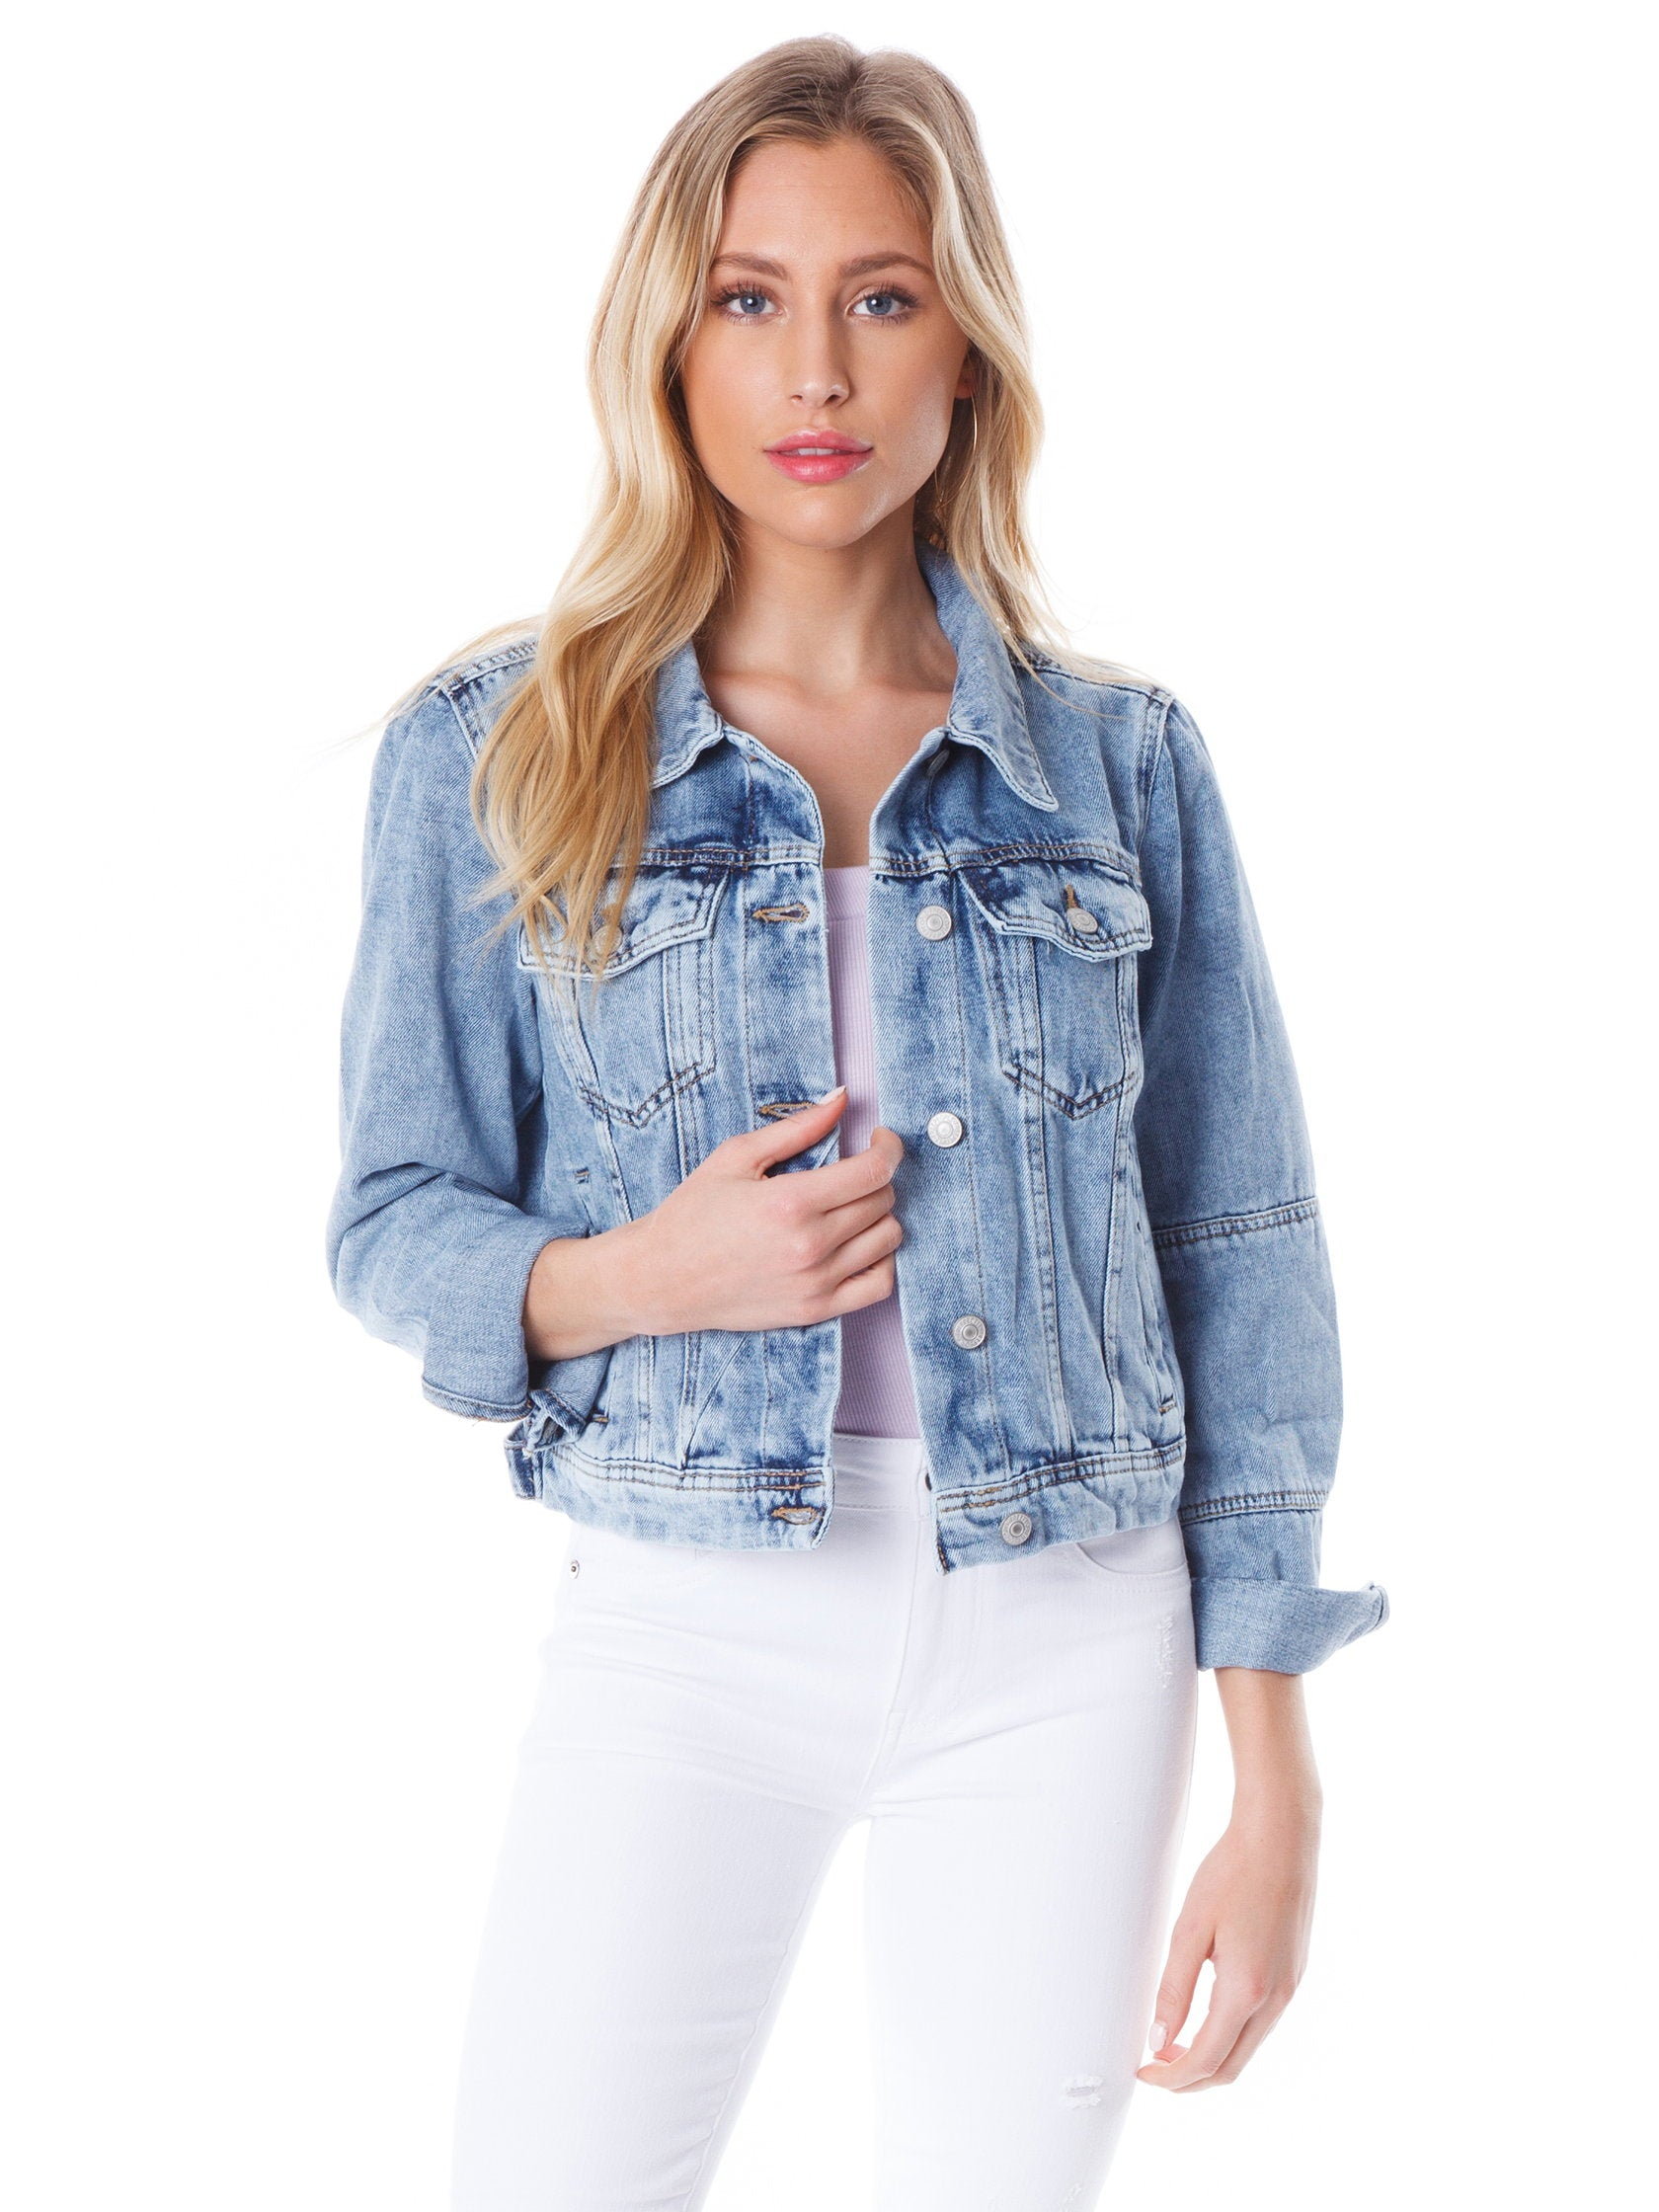 Girl outfit in a jacket rental from Free People called Rumors Denim Jacket